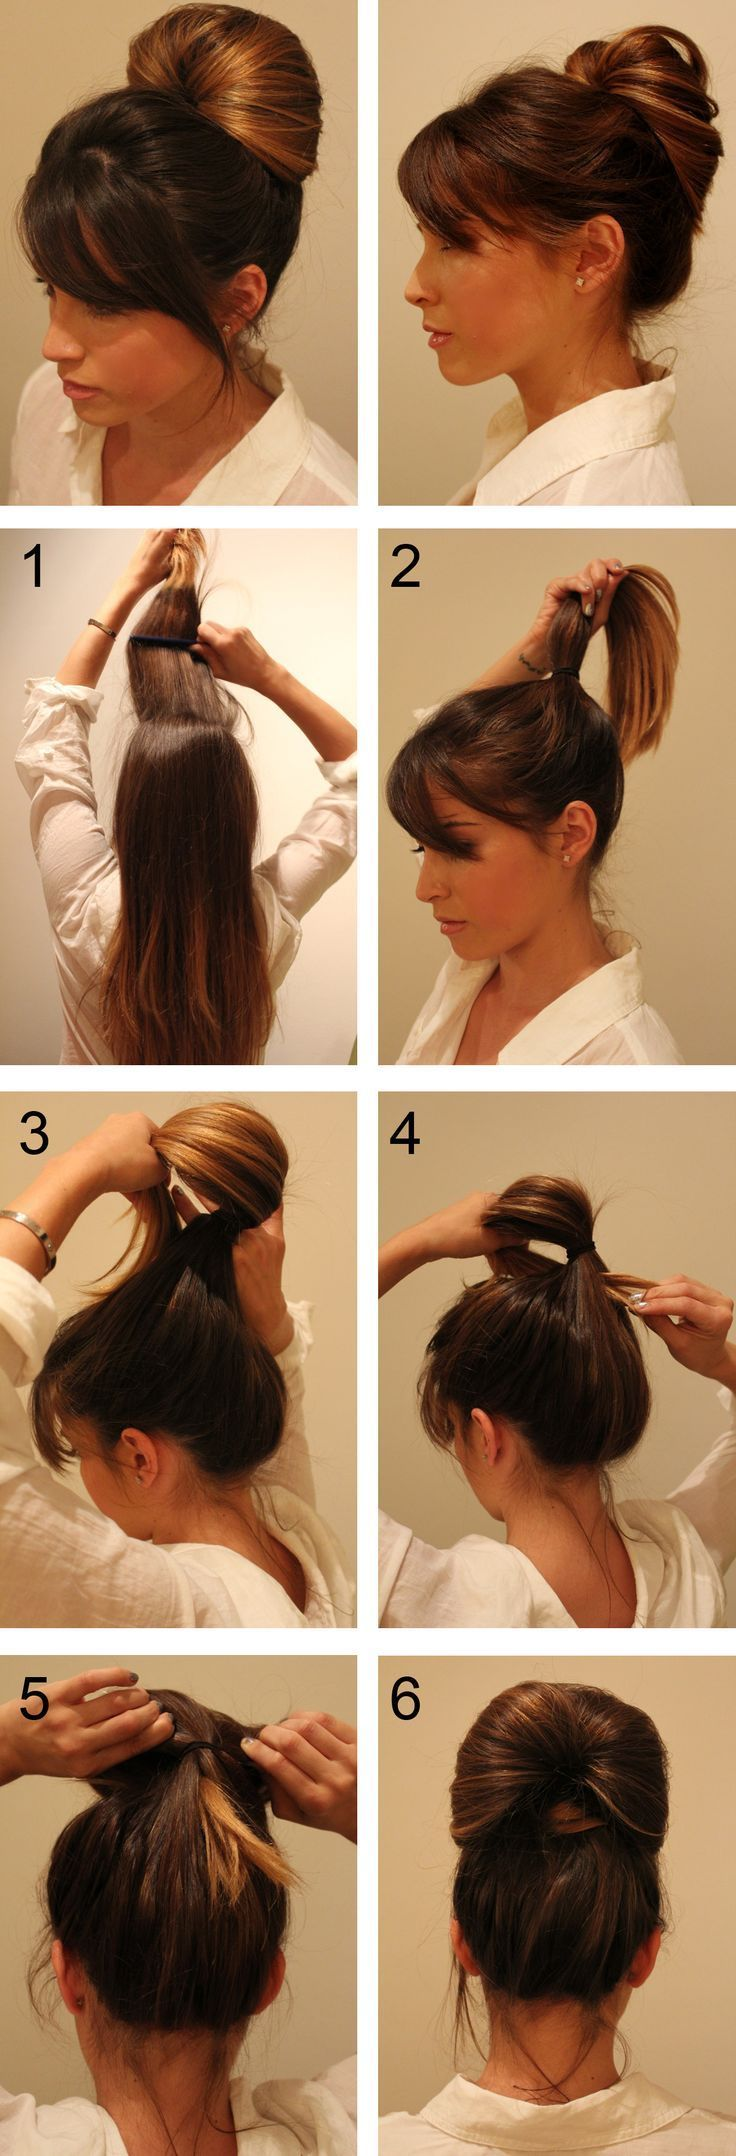 Inside out pony tail technique